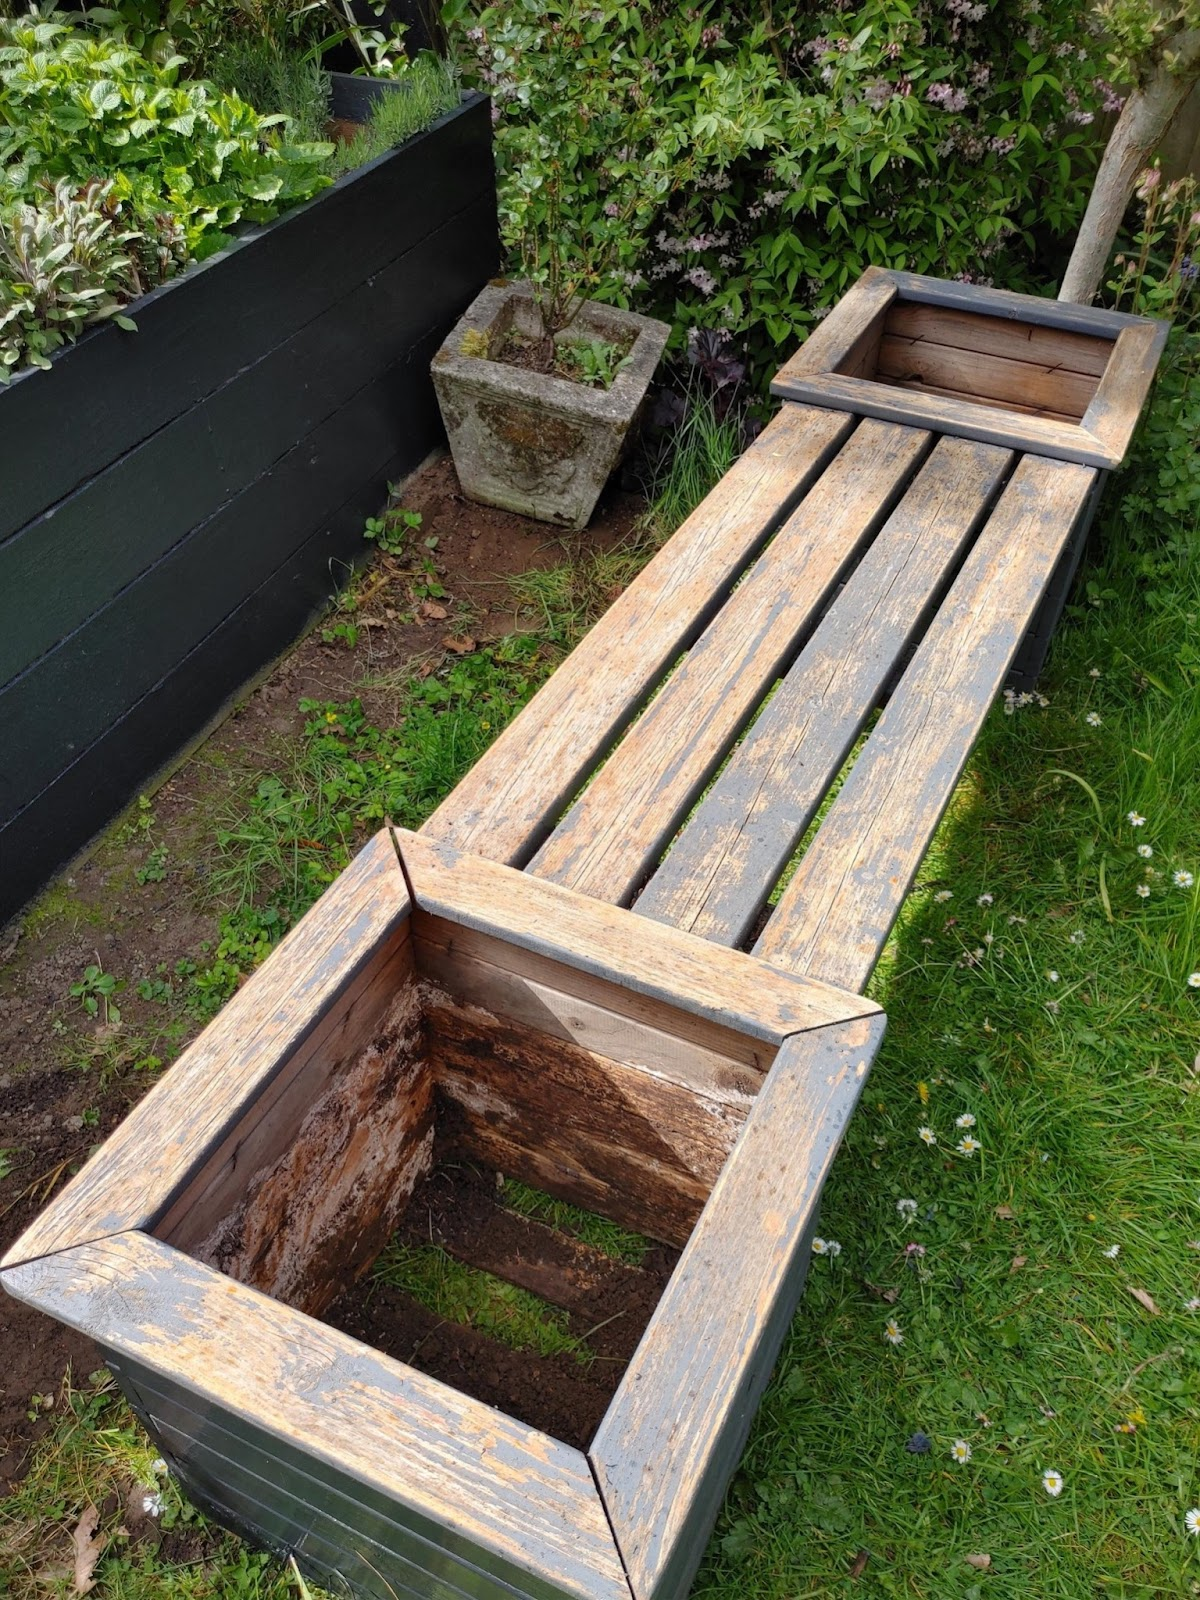 The bench from last year that hadn't been sanded down